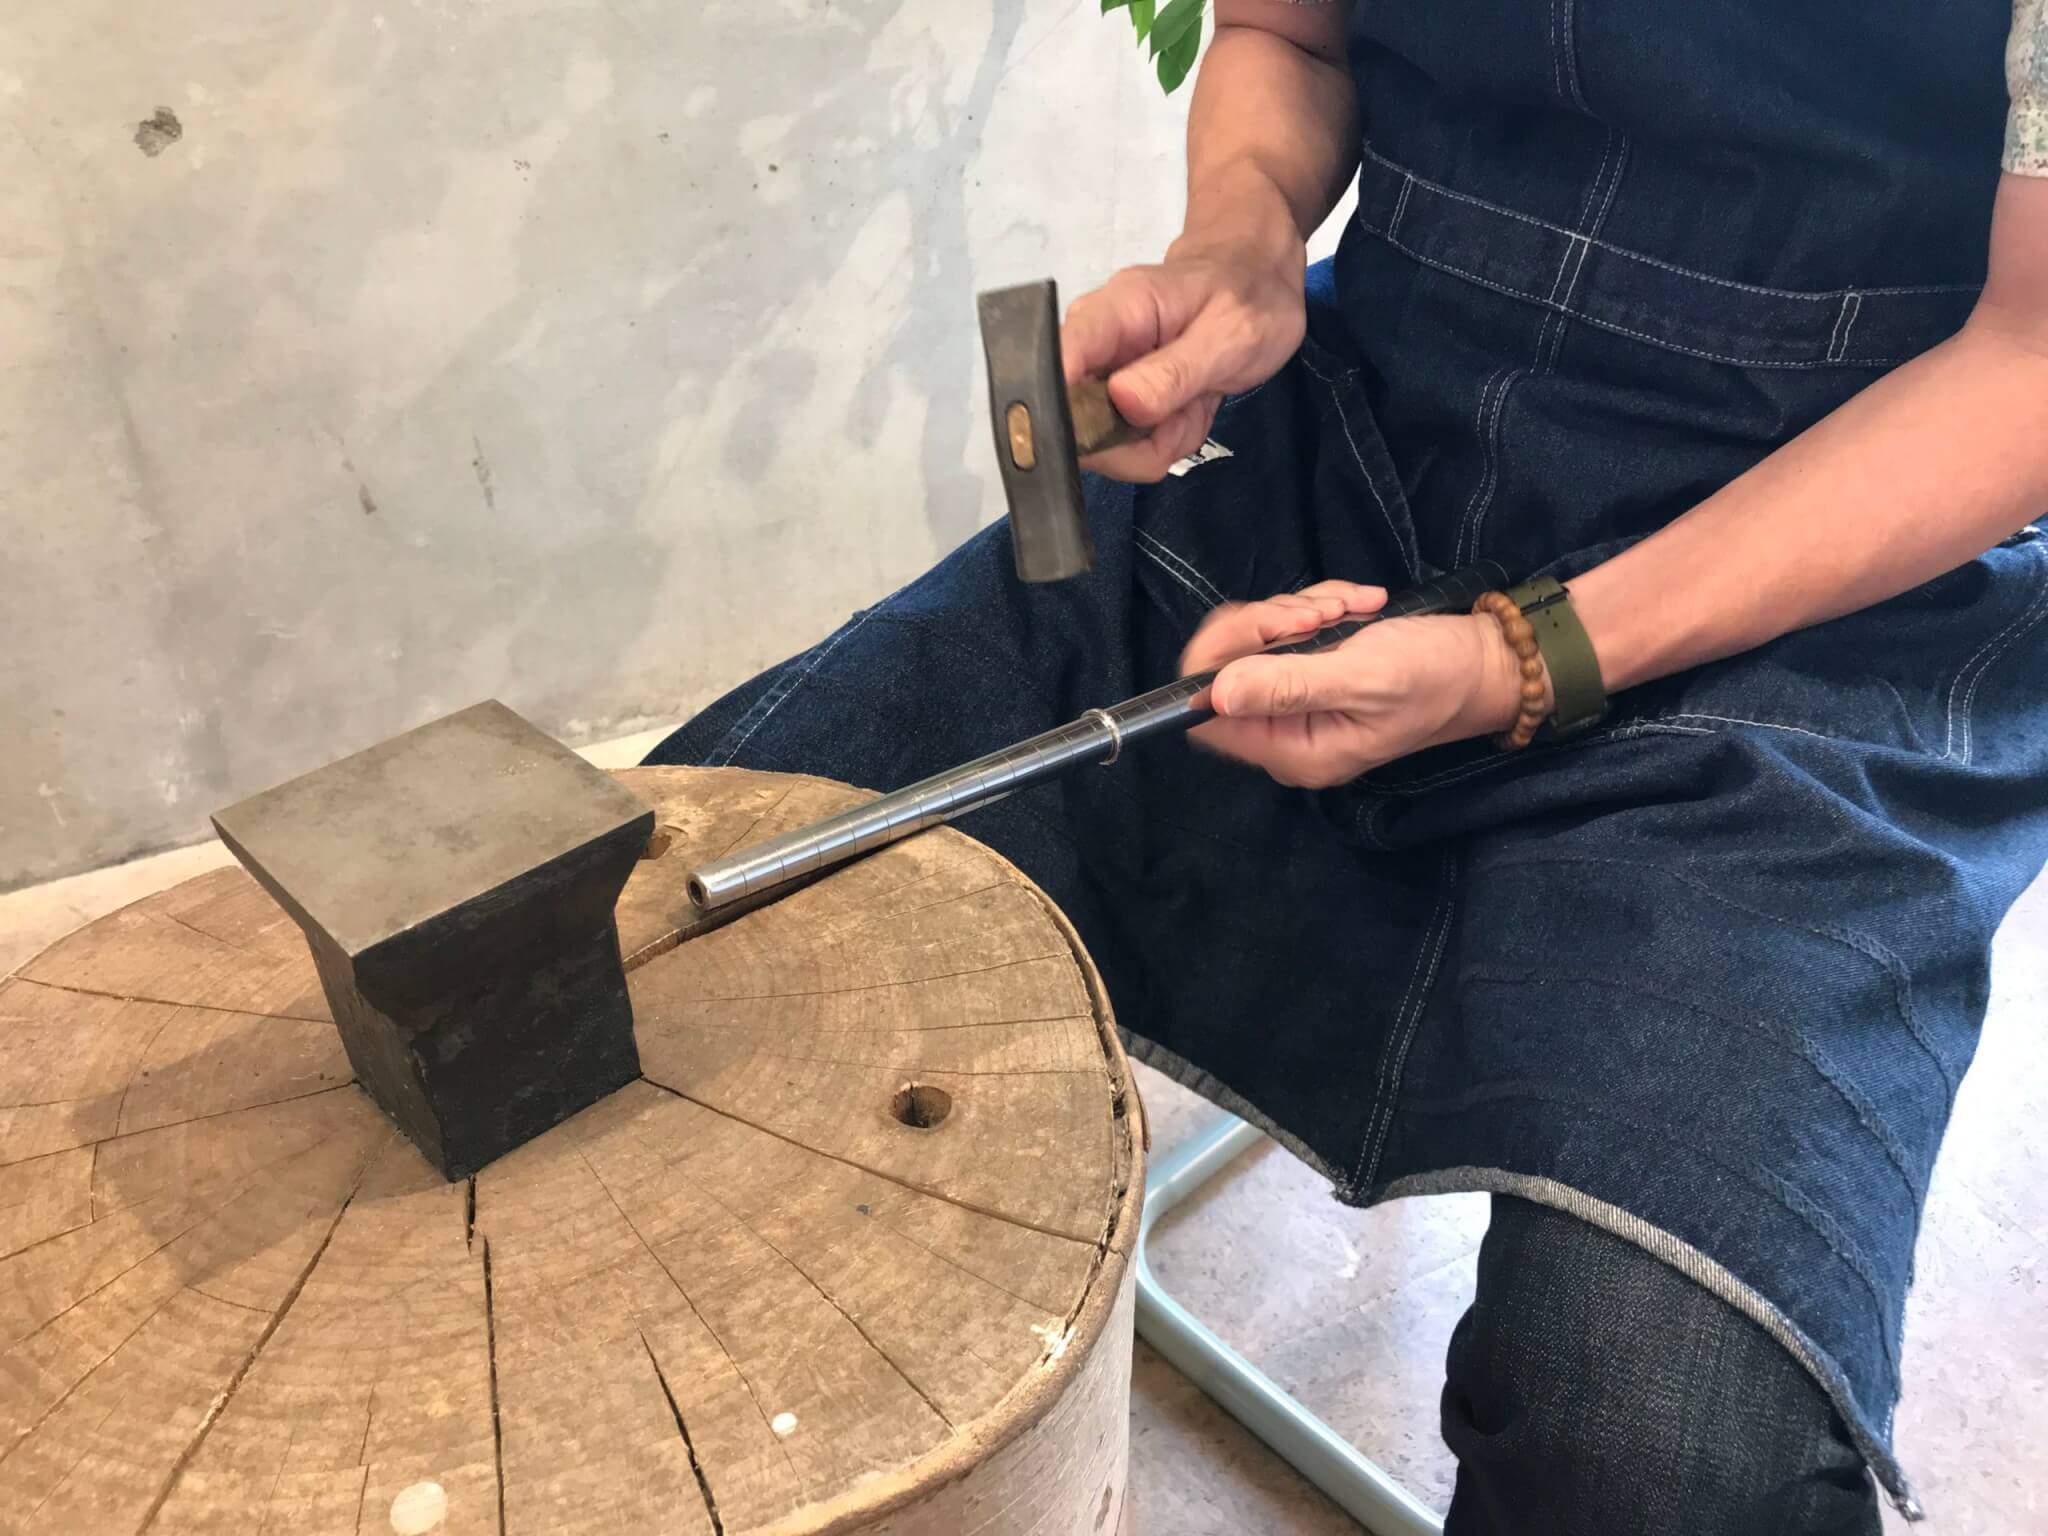 Tools Needed for DIY Workshop Sessions